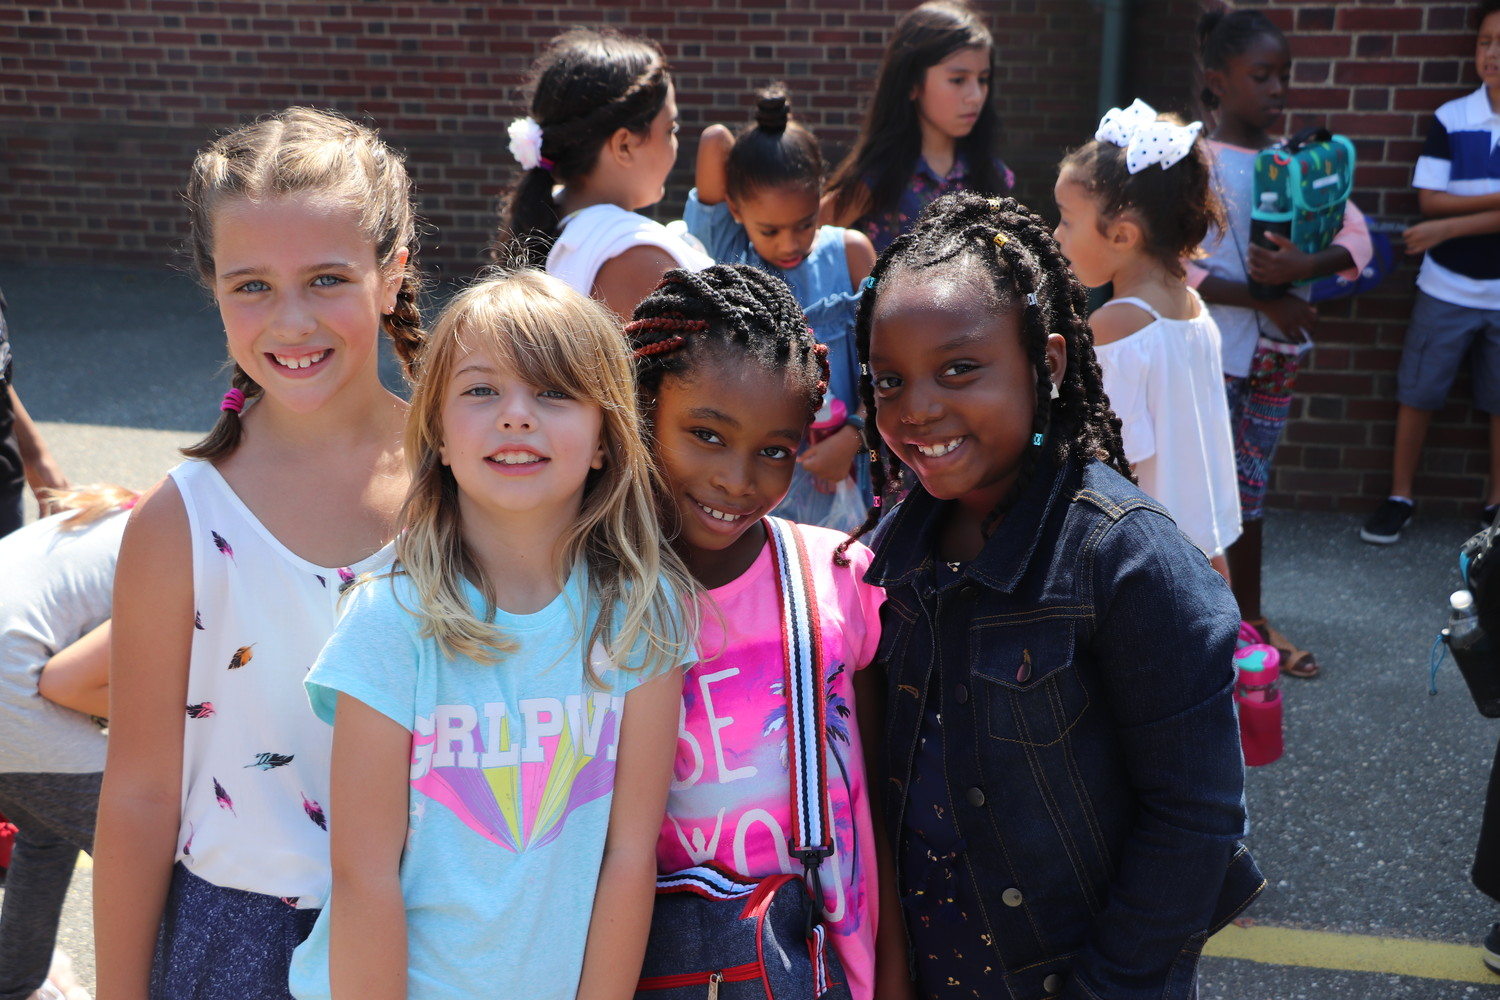 Students at Plaza Elementary were welcomed back for the 2017 – 2018 school year on Tuesday, Sept. 5. Laughter filled the playground as students enjoyed their first day of school.